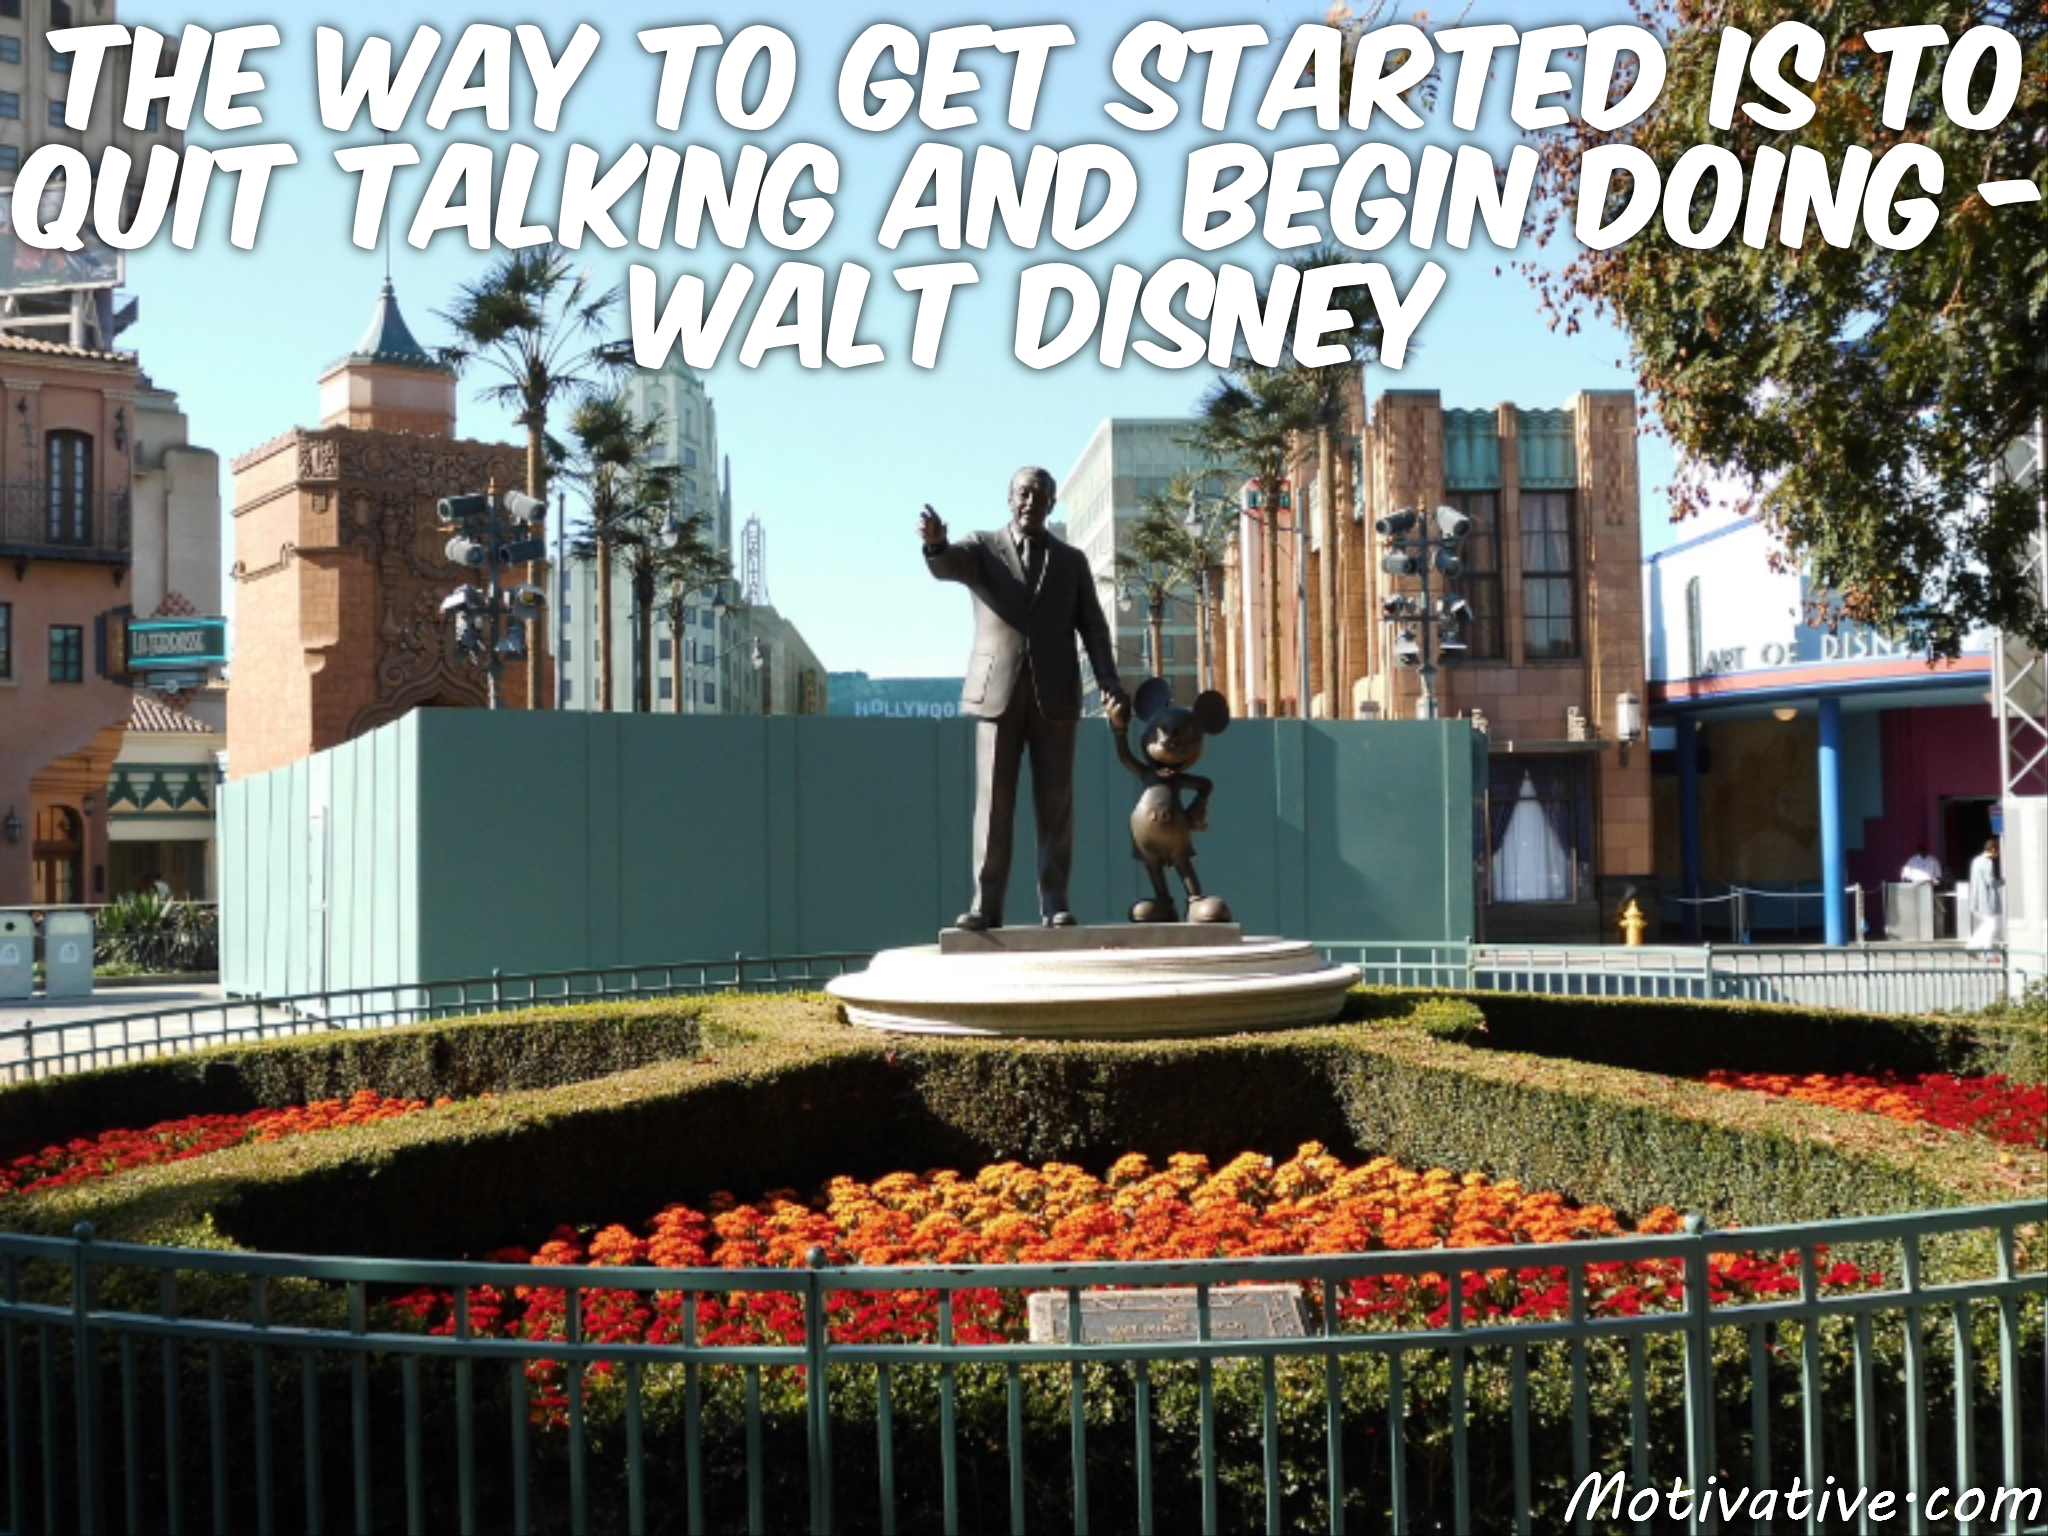 The way to get started is to quit talking and begin doing – Walt Disney